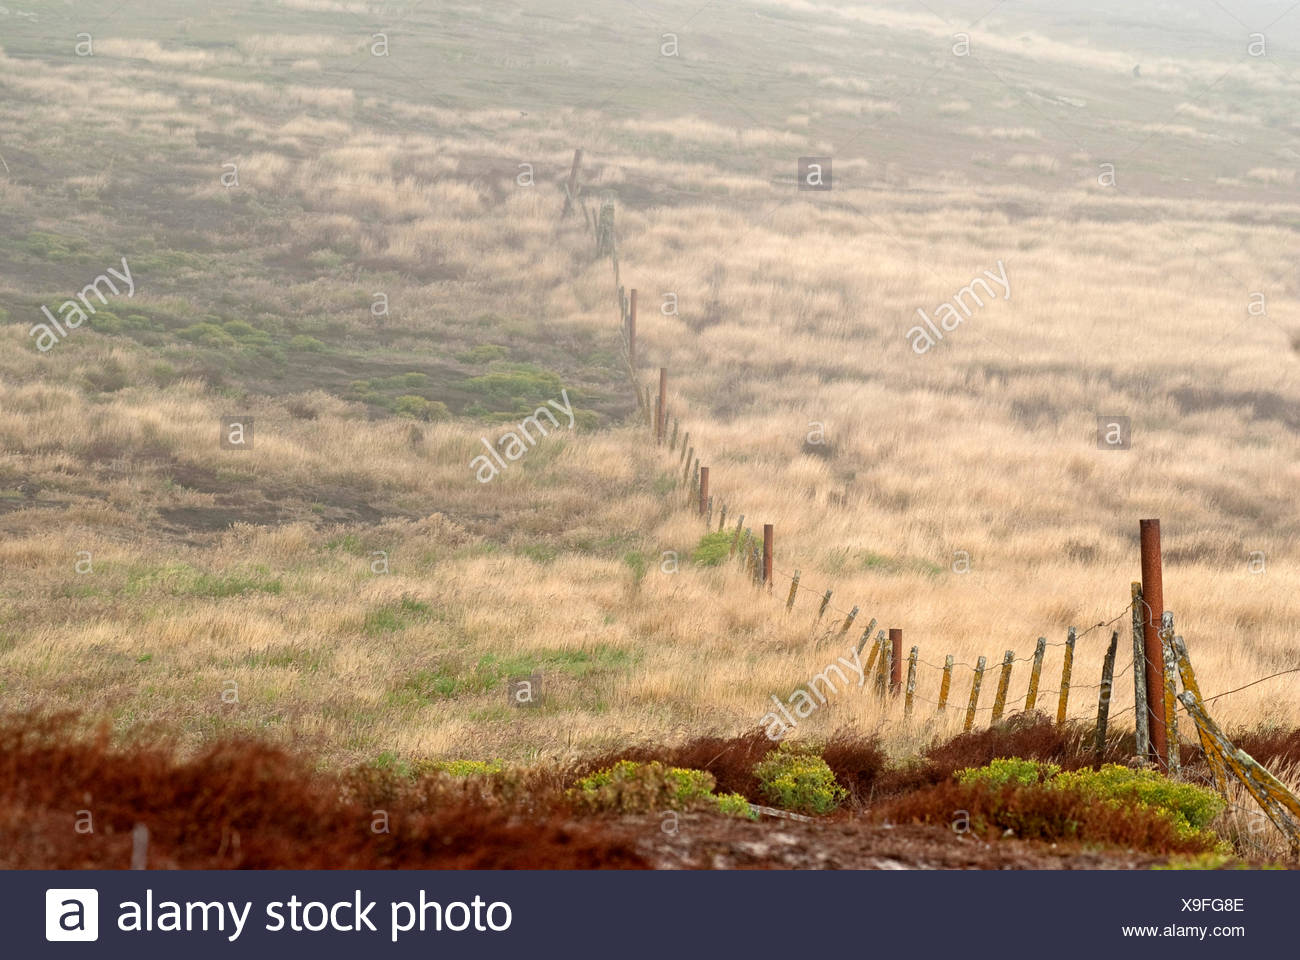 A fence separates sheep pastures. - Stock Image